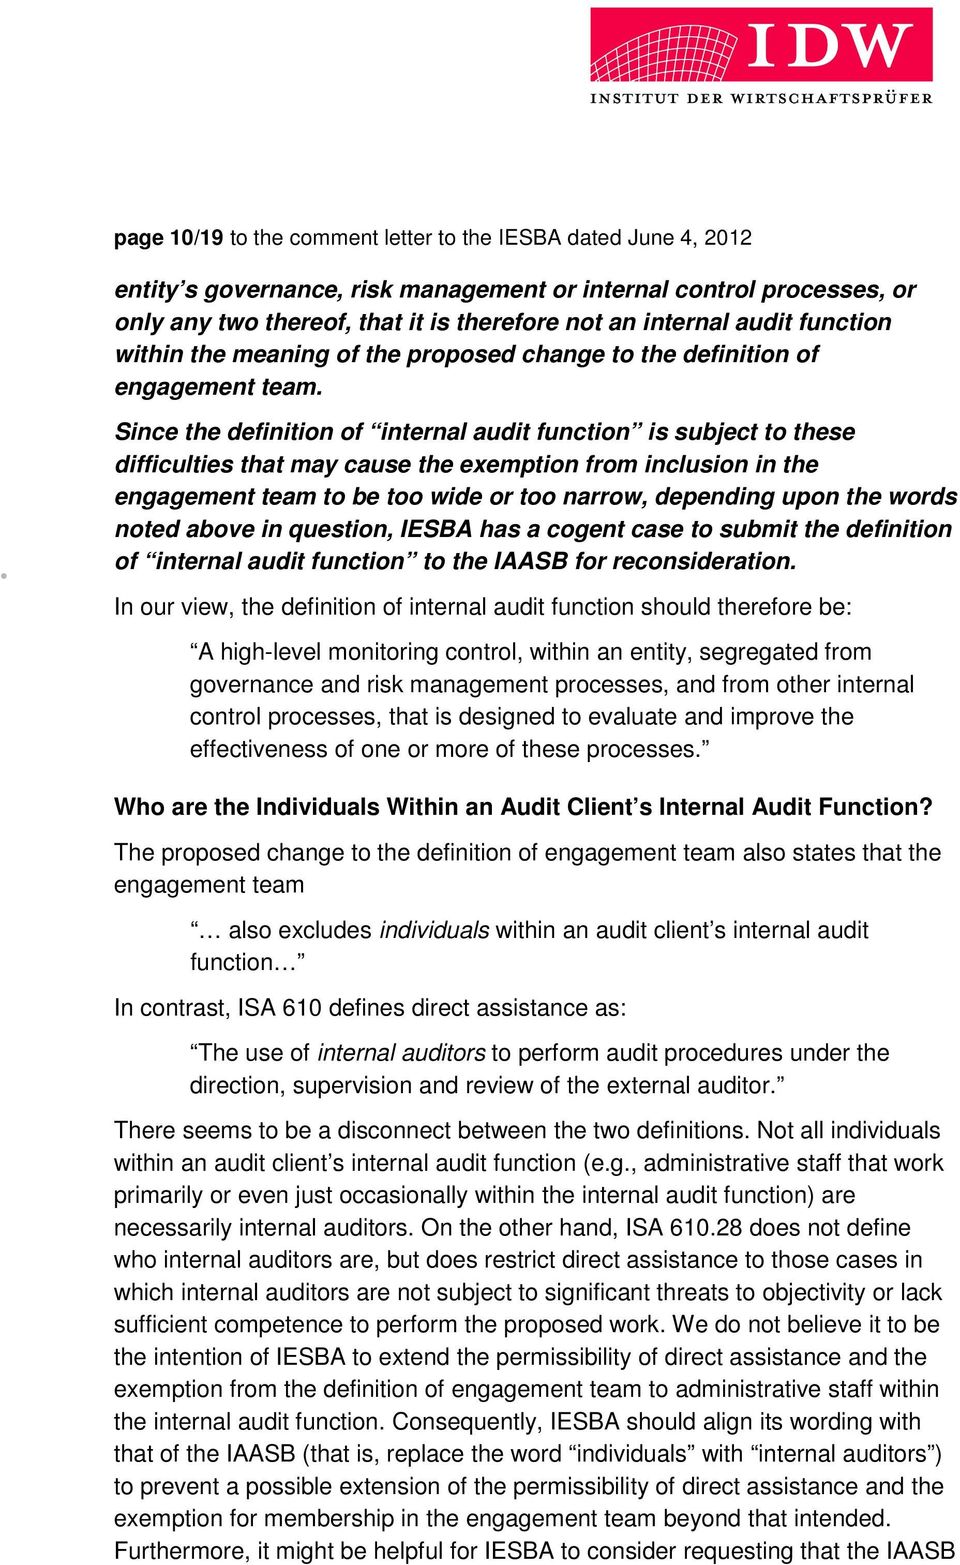 Since the definition of internal audit function is subject to these difficulties that may cause the exemption from inclusion in the engagement team to be too wide or too narrow, depending upon the